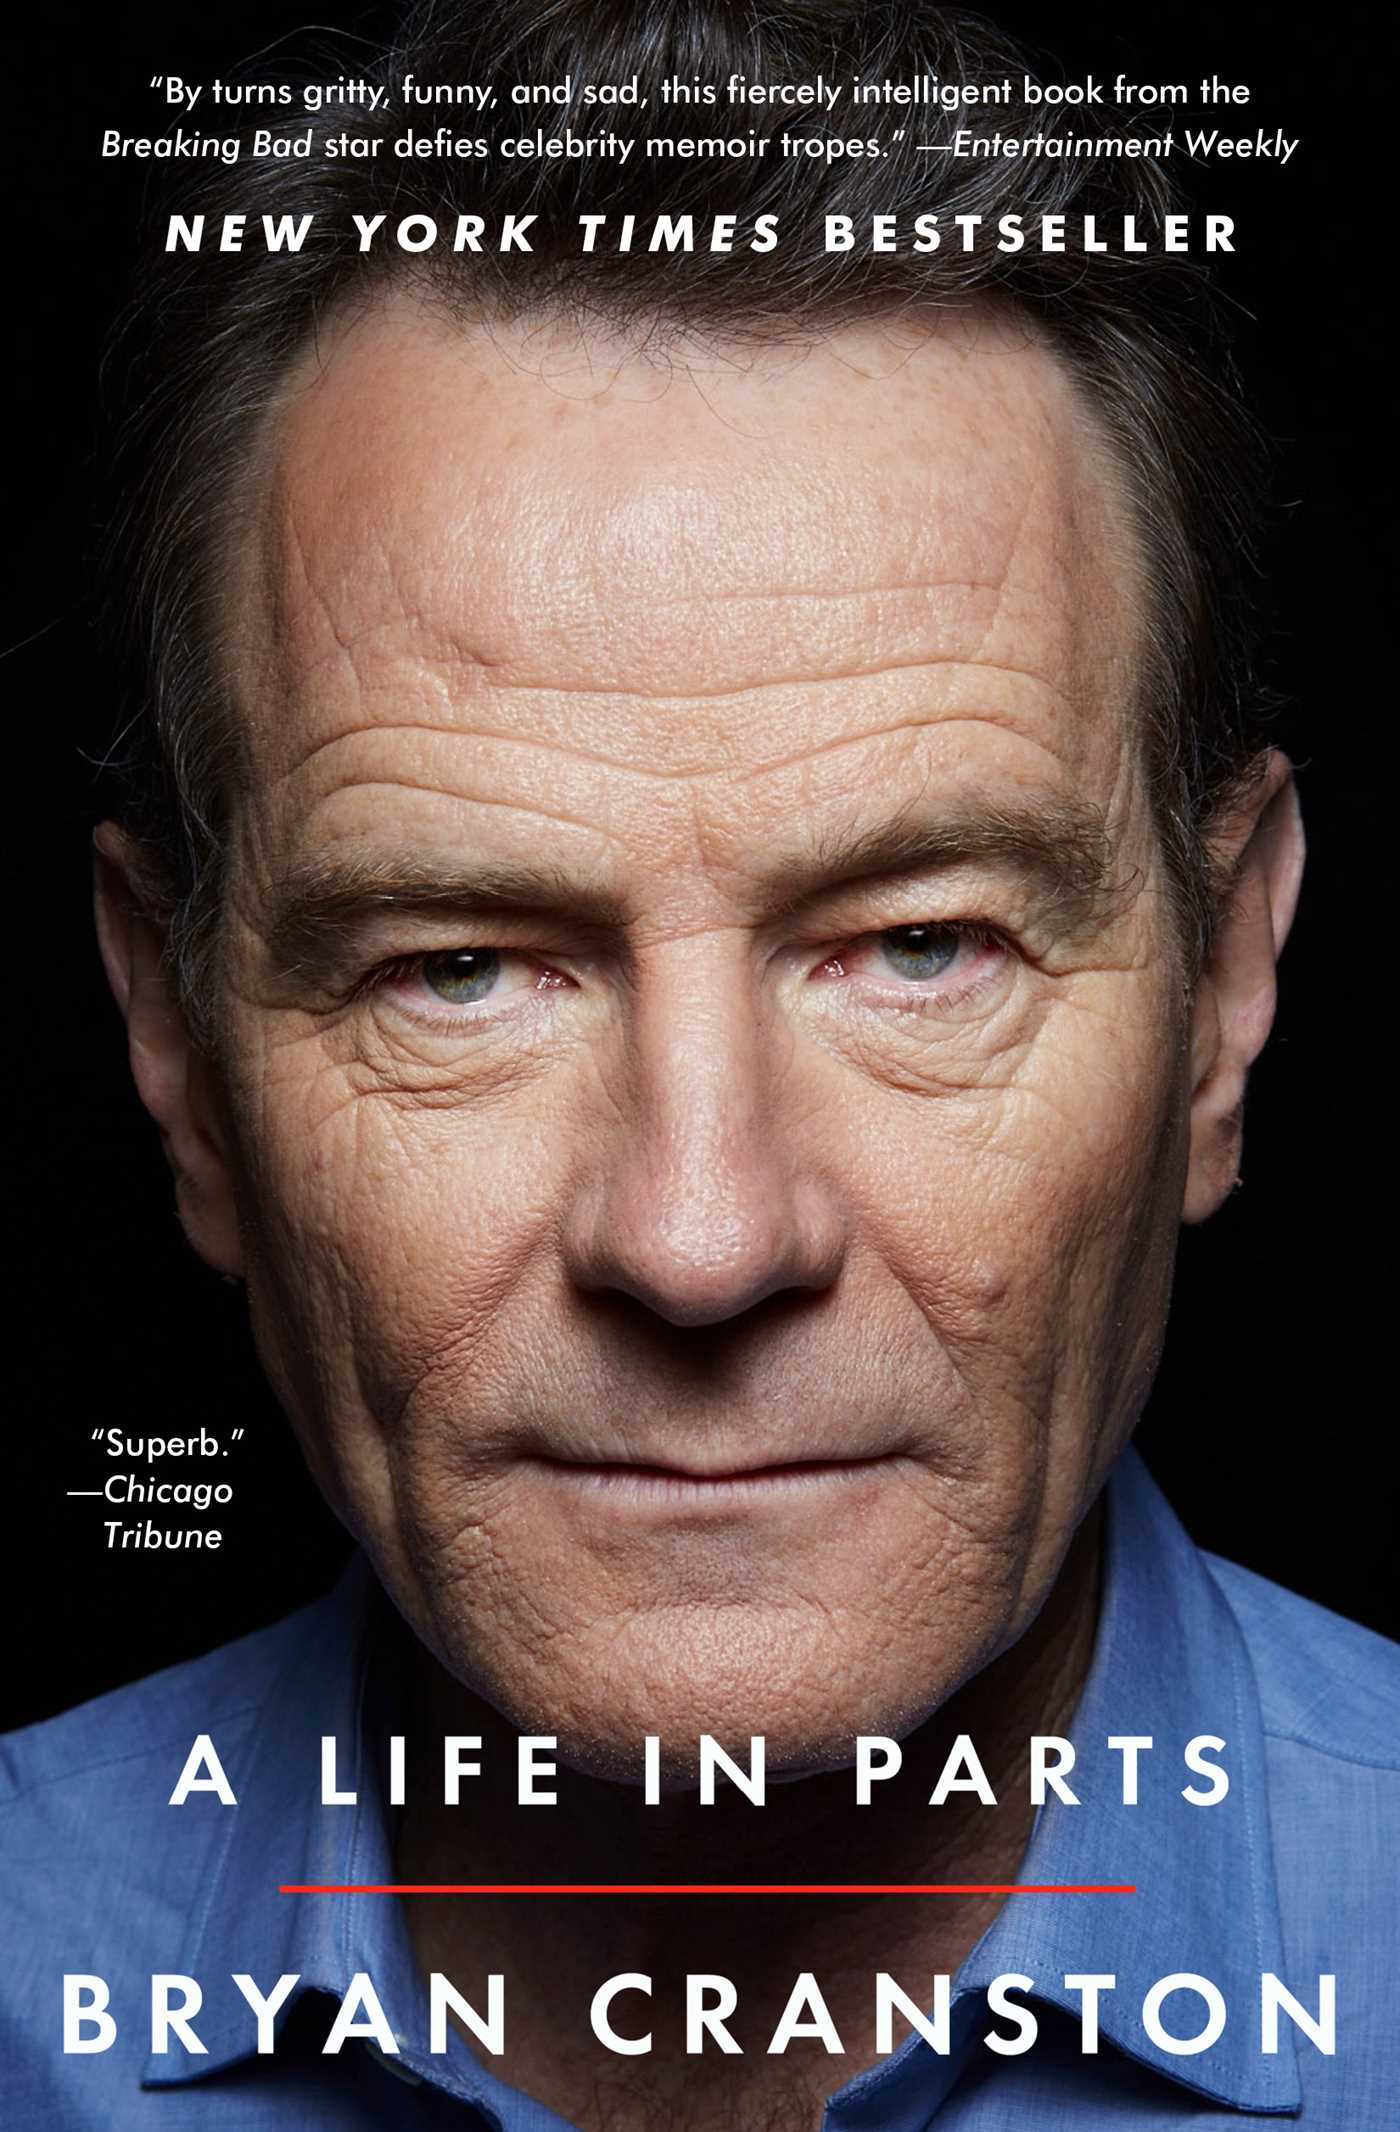 A life in parts 9781476793870 hr